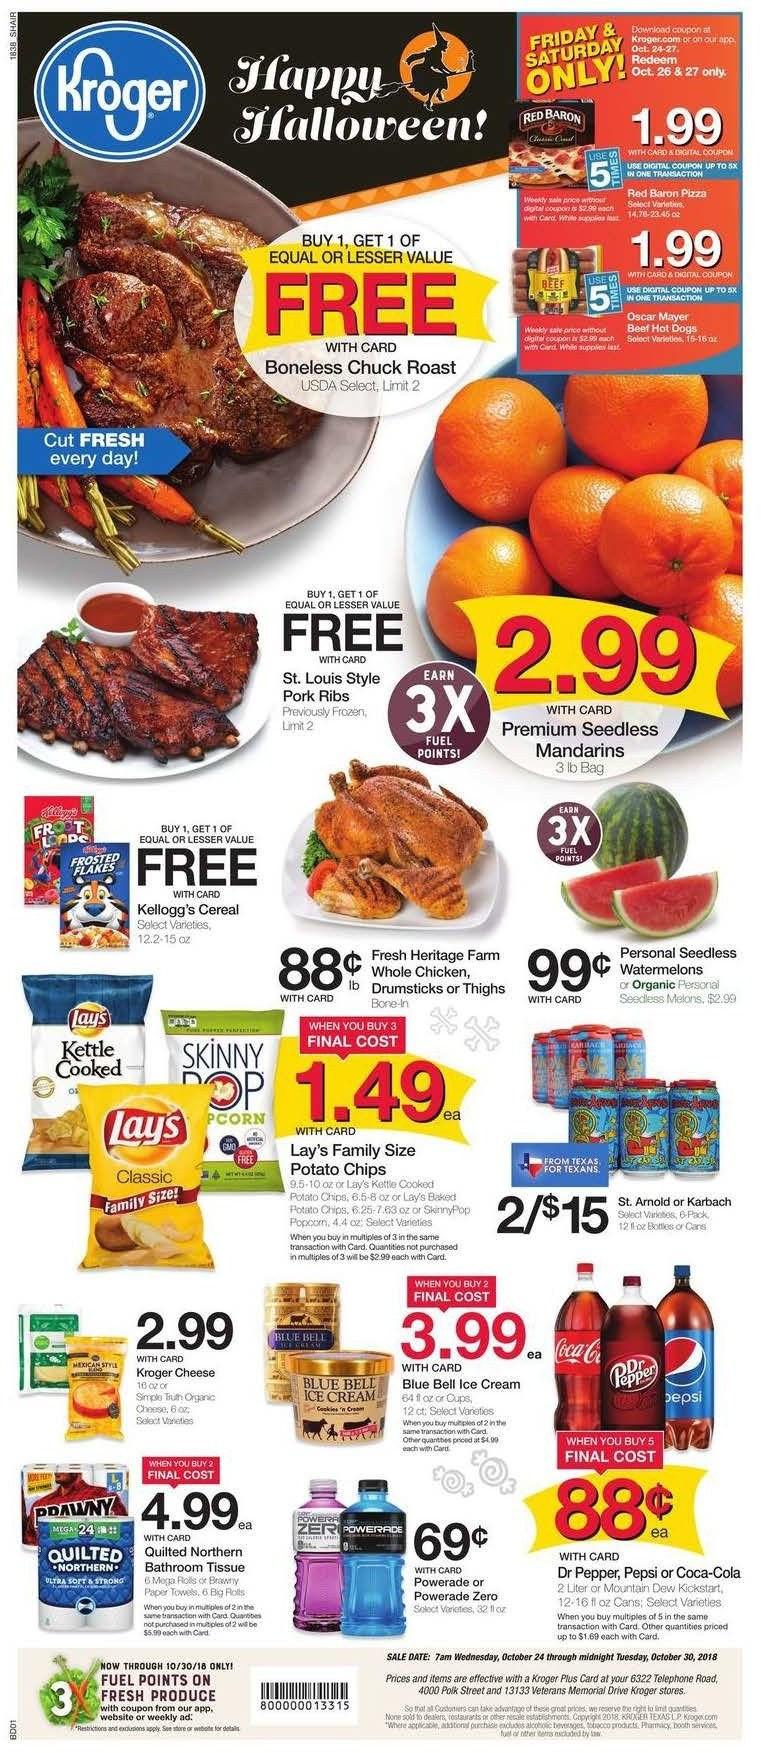 Kroger Flyer - 10.24.2018 - 10.30.2018 - Sales products - deer, corn, melons, pizza, cheese, ice cream, potato chips, chips, Lay's, cereals, pepper, Coca-Cola, Mountain Dew, Pepsi, Dr. Pepper, beef meat, pork meat, paper towel, Quilted Northern, kettle, fuel. Page 1.